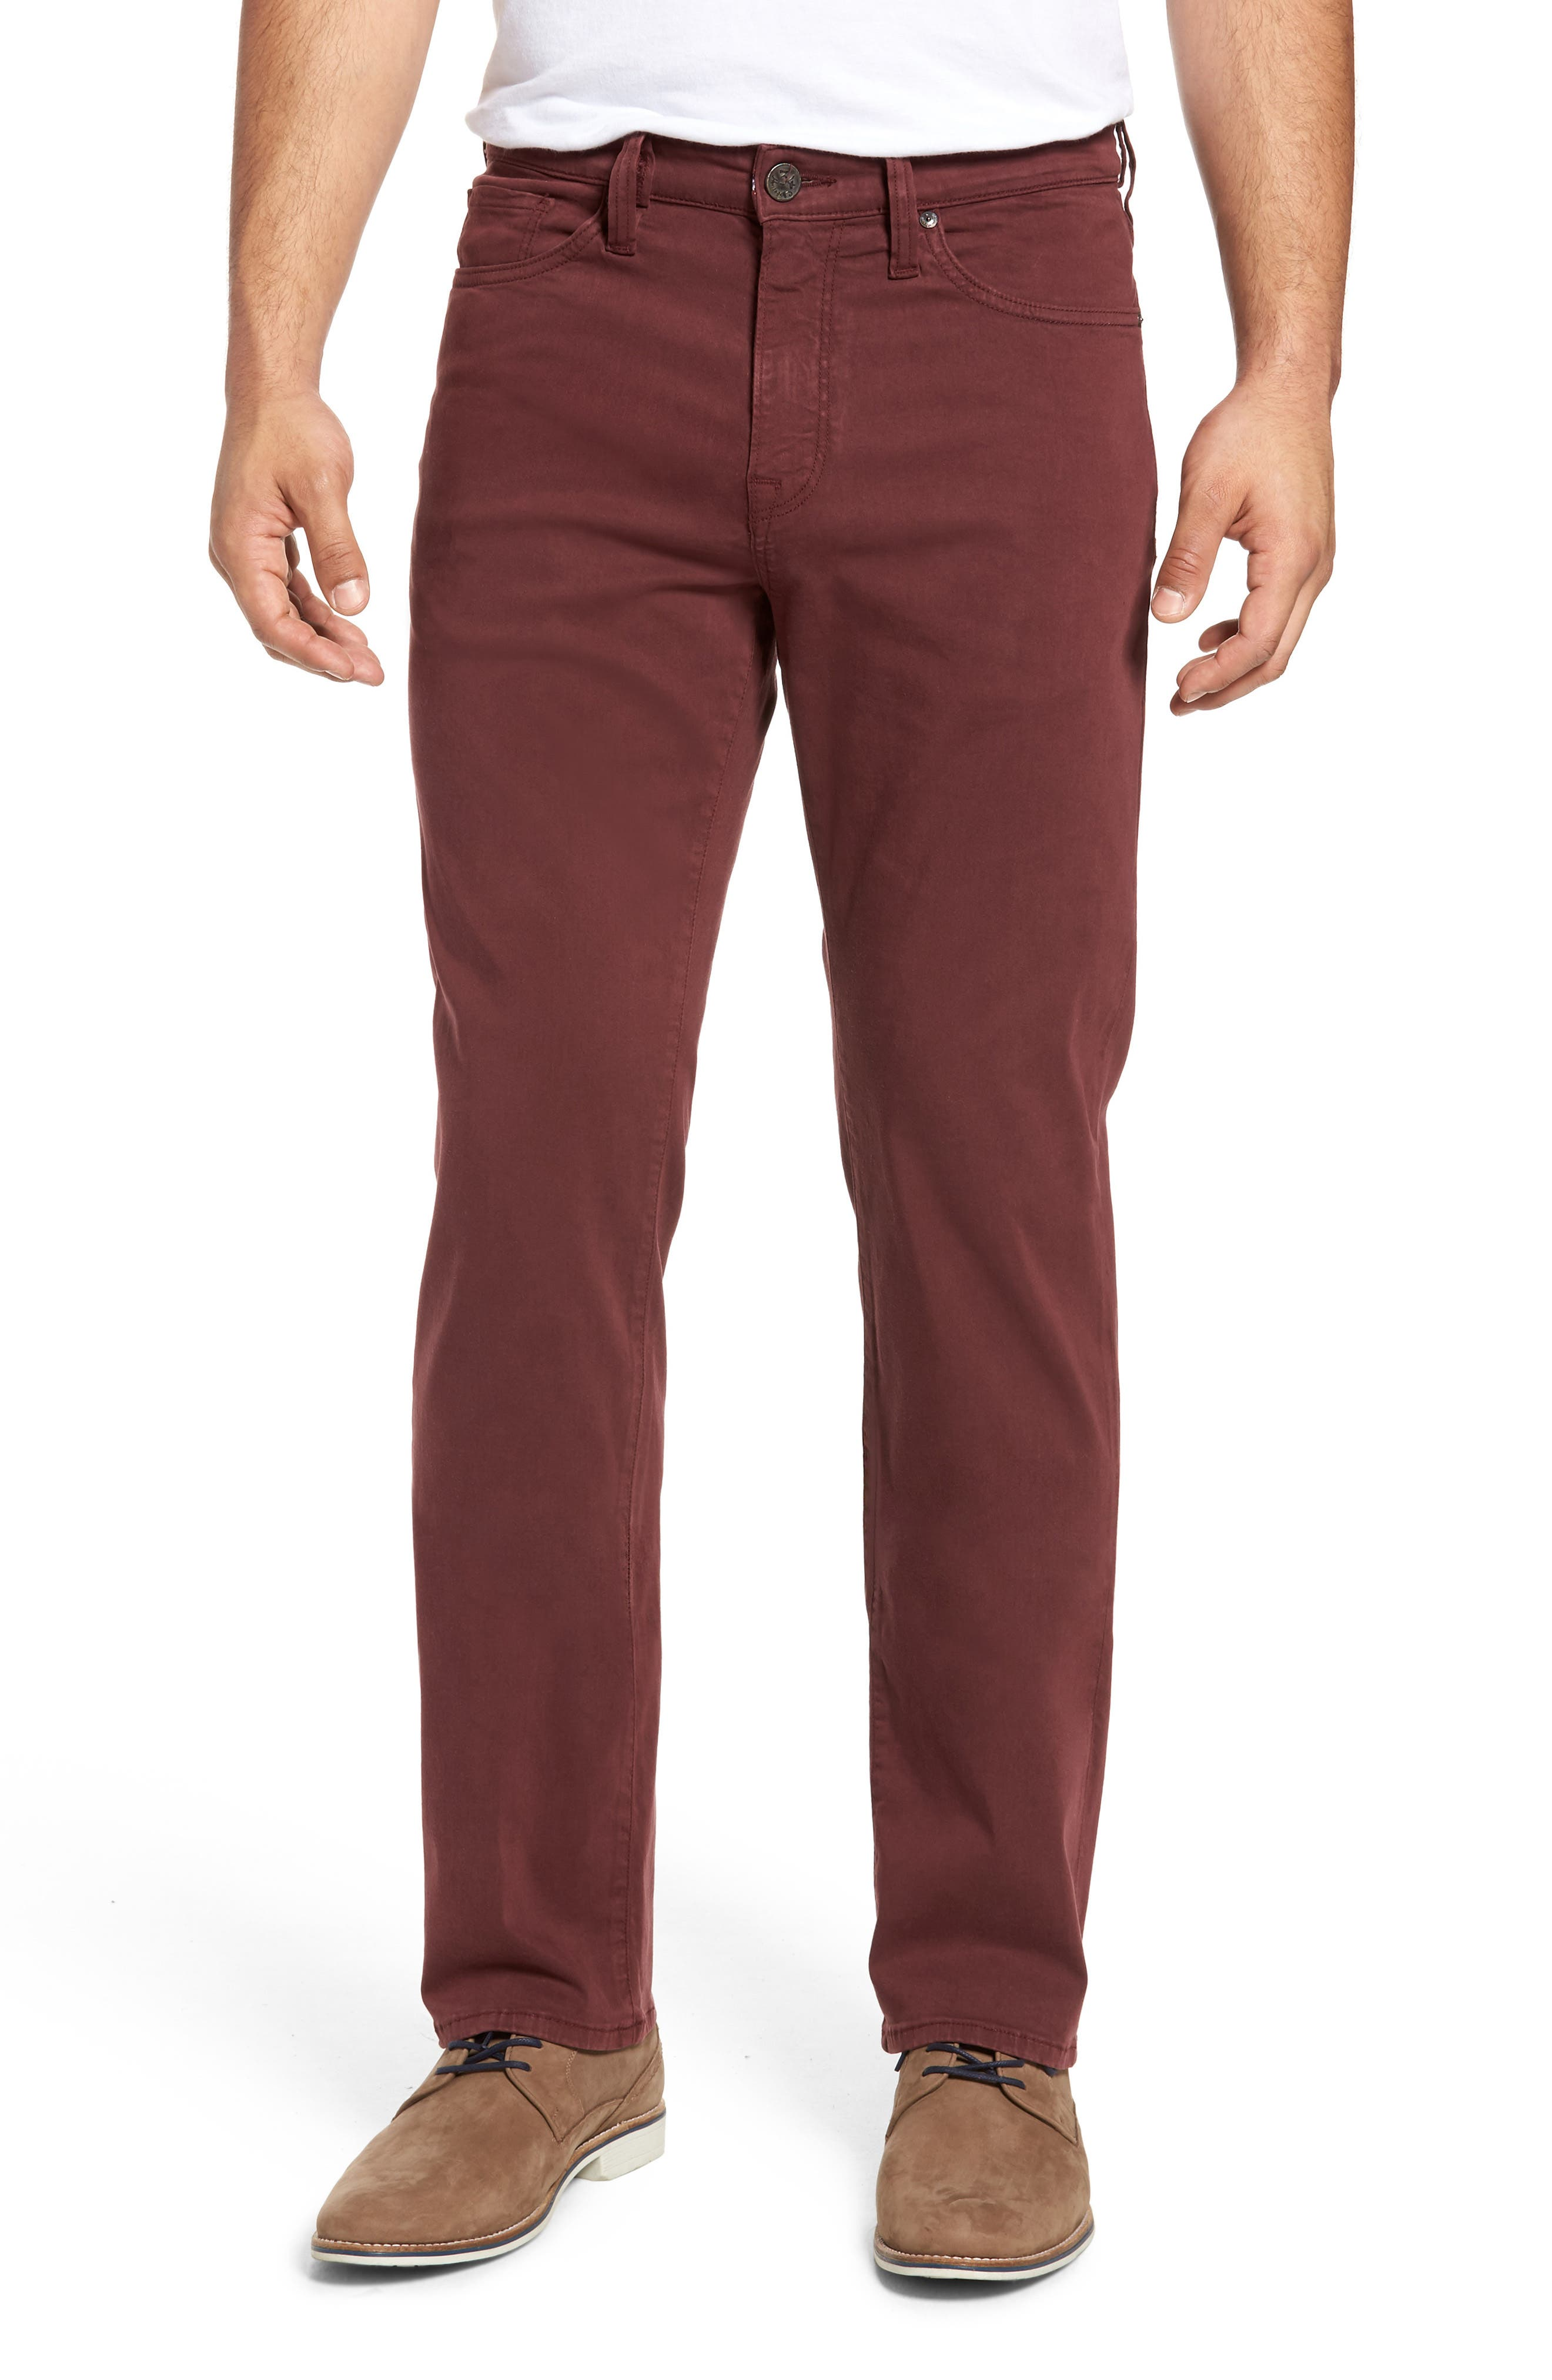 Charisma Relaxed Fit Pants,                         Main,                         color, Bordeaux Twill